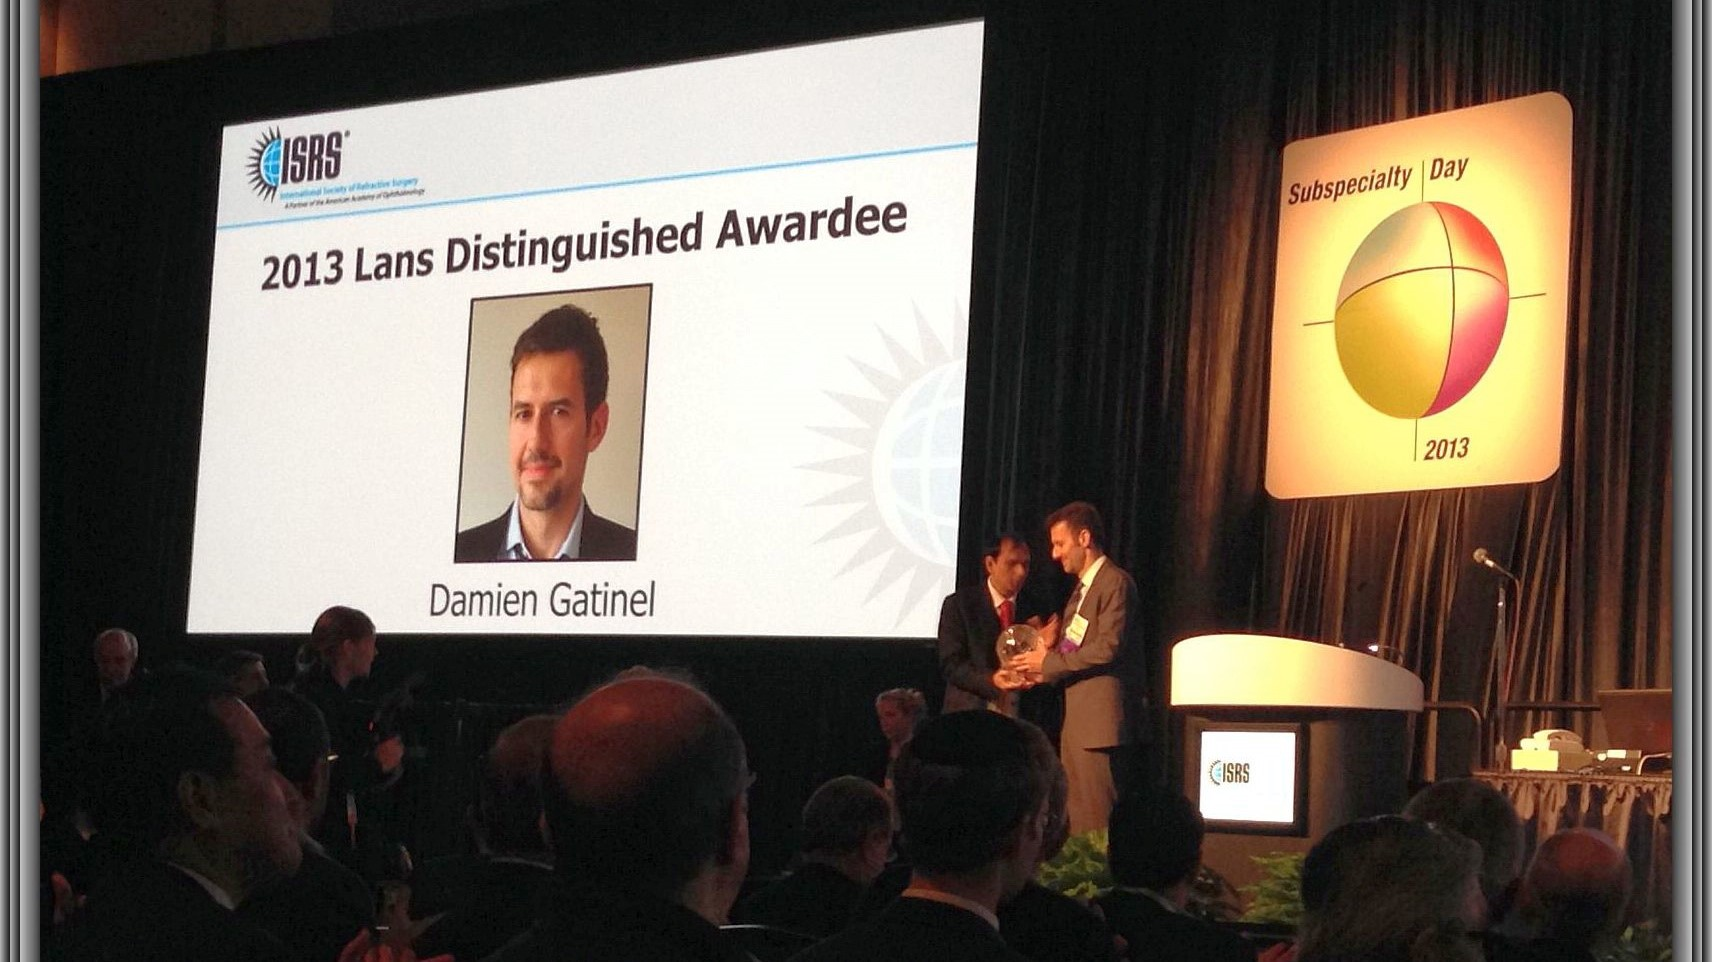 Doctor Damien Gatinel was awarded the Lans Distinguished Award by the American Academy for Ophthalmology